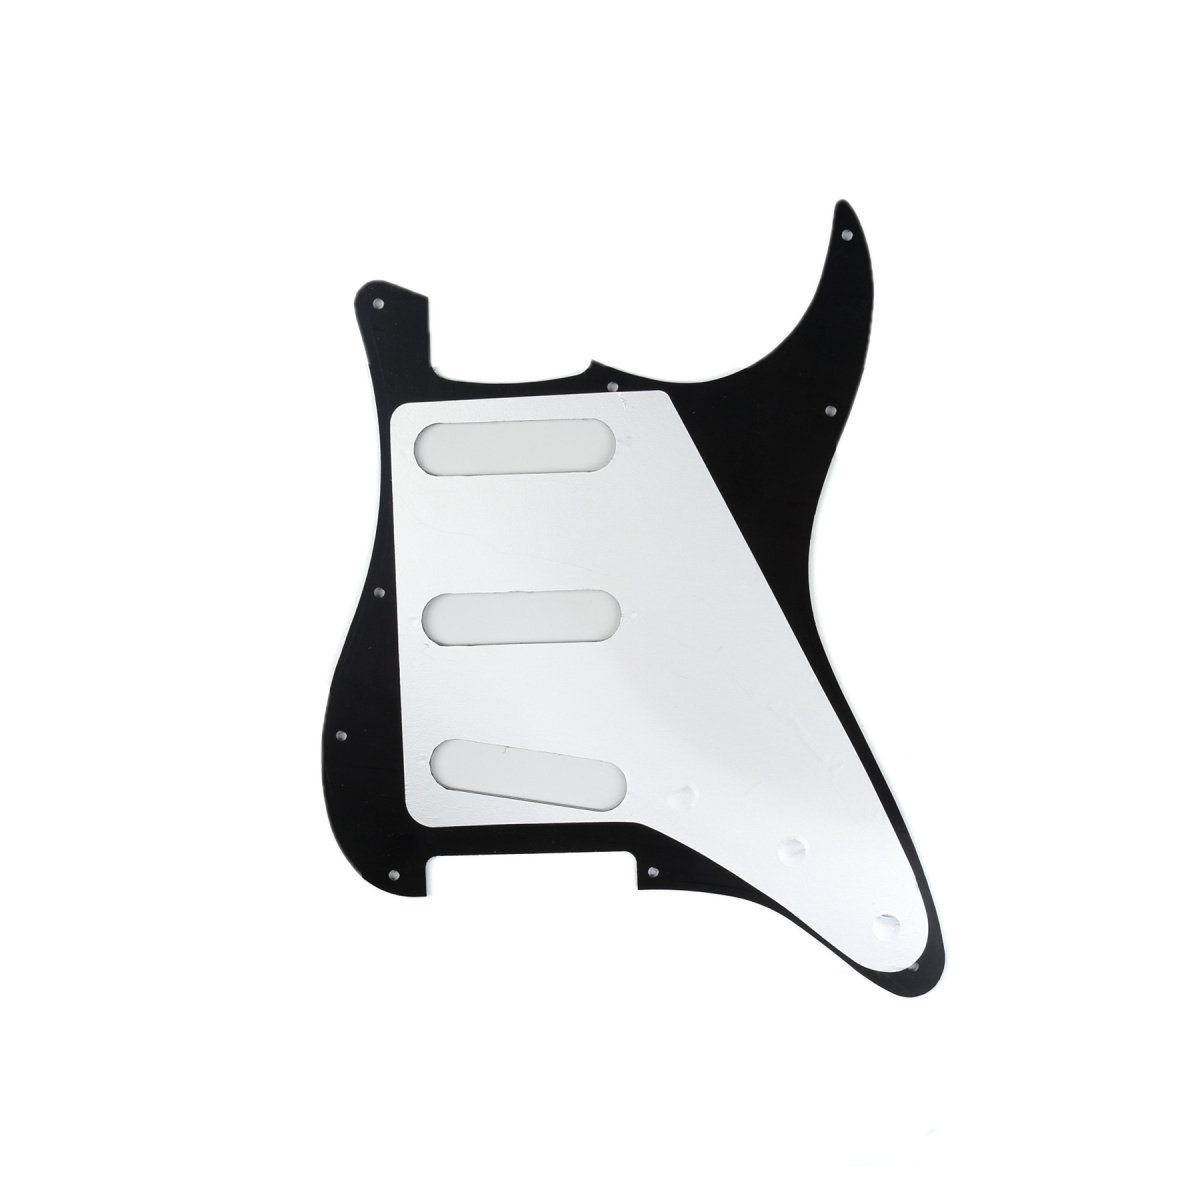 Stratocaster-Pickguard-For-Fender-US-Mexico-Strat-Electric-Guitar thumbnail 18